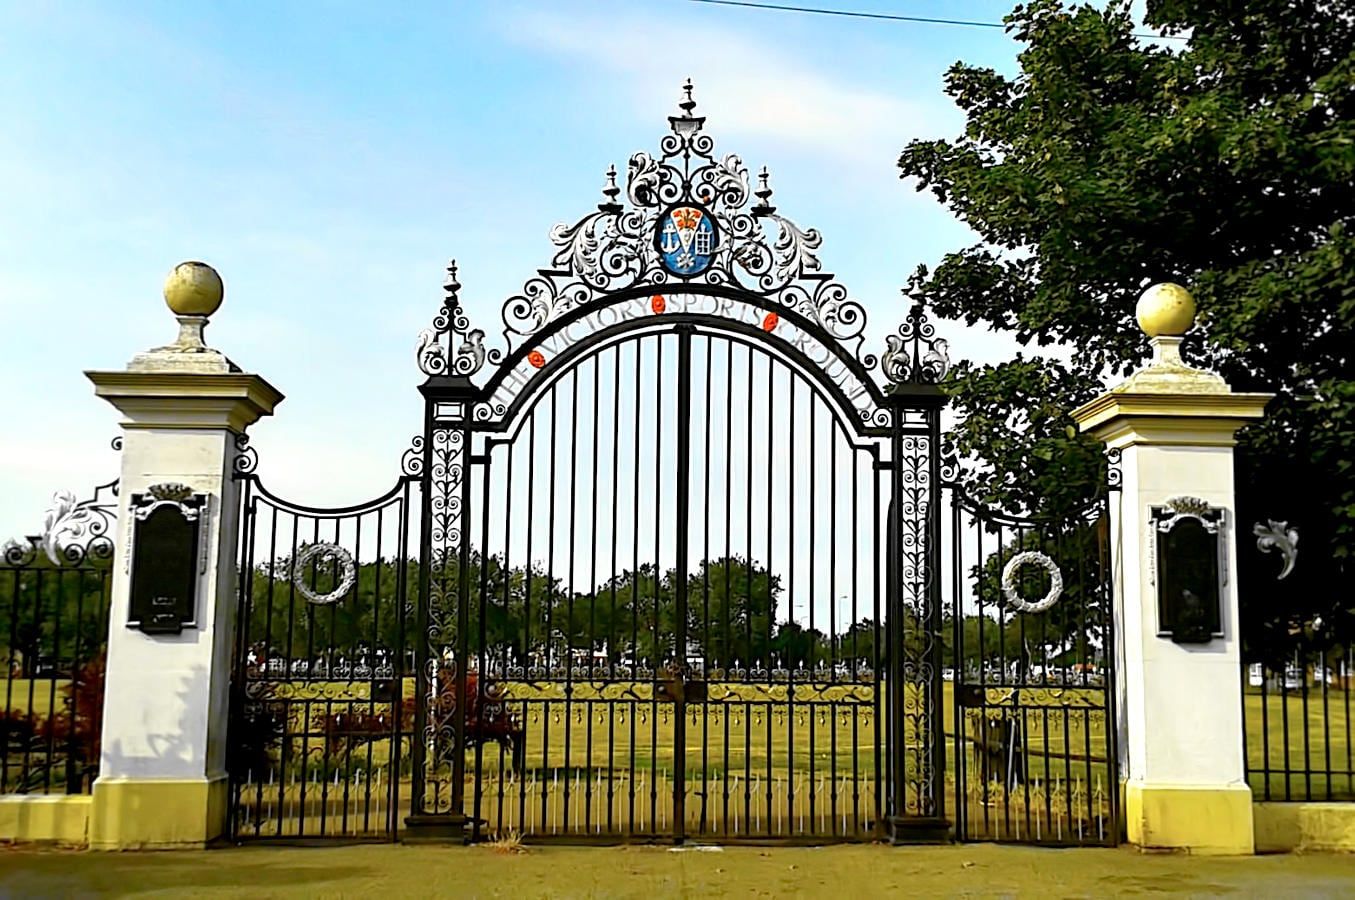 Wrought Iron Gate Restoration – Victory Sports Ground – Southend-on-Sea